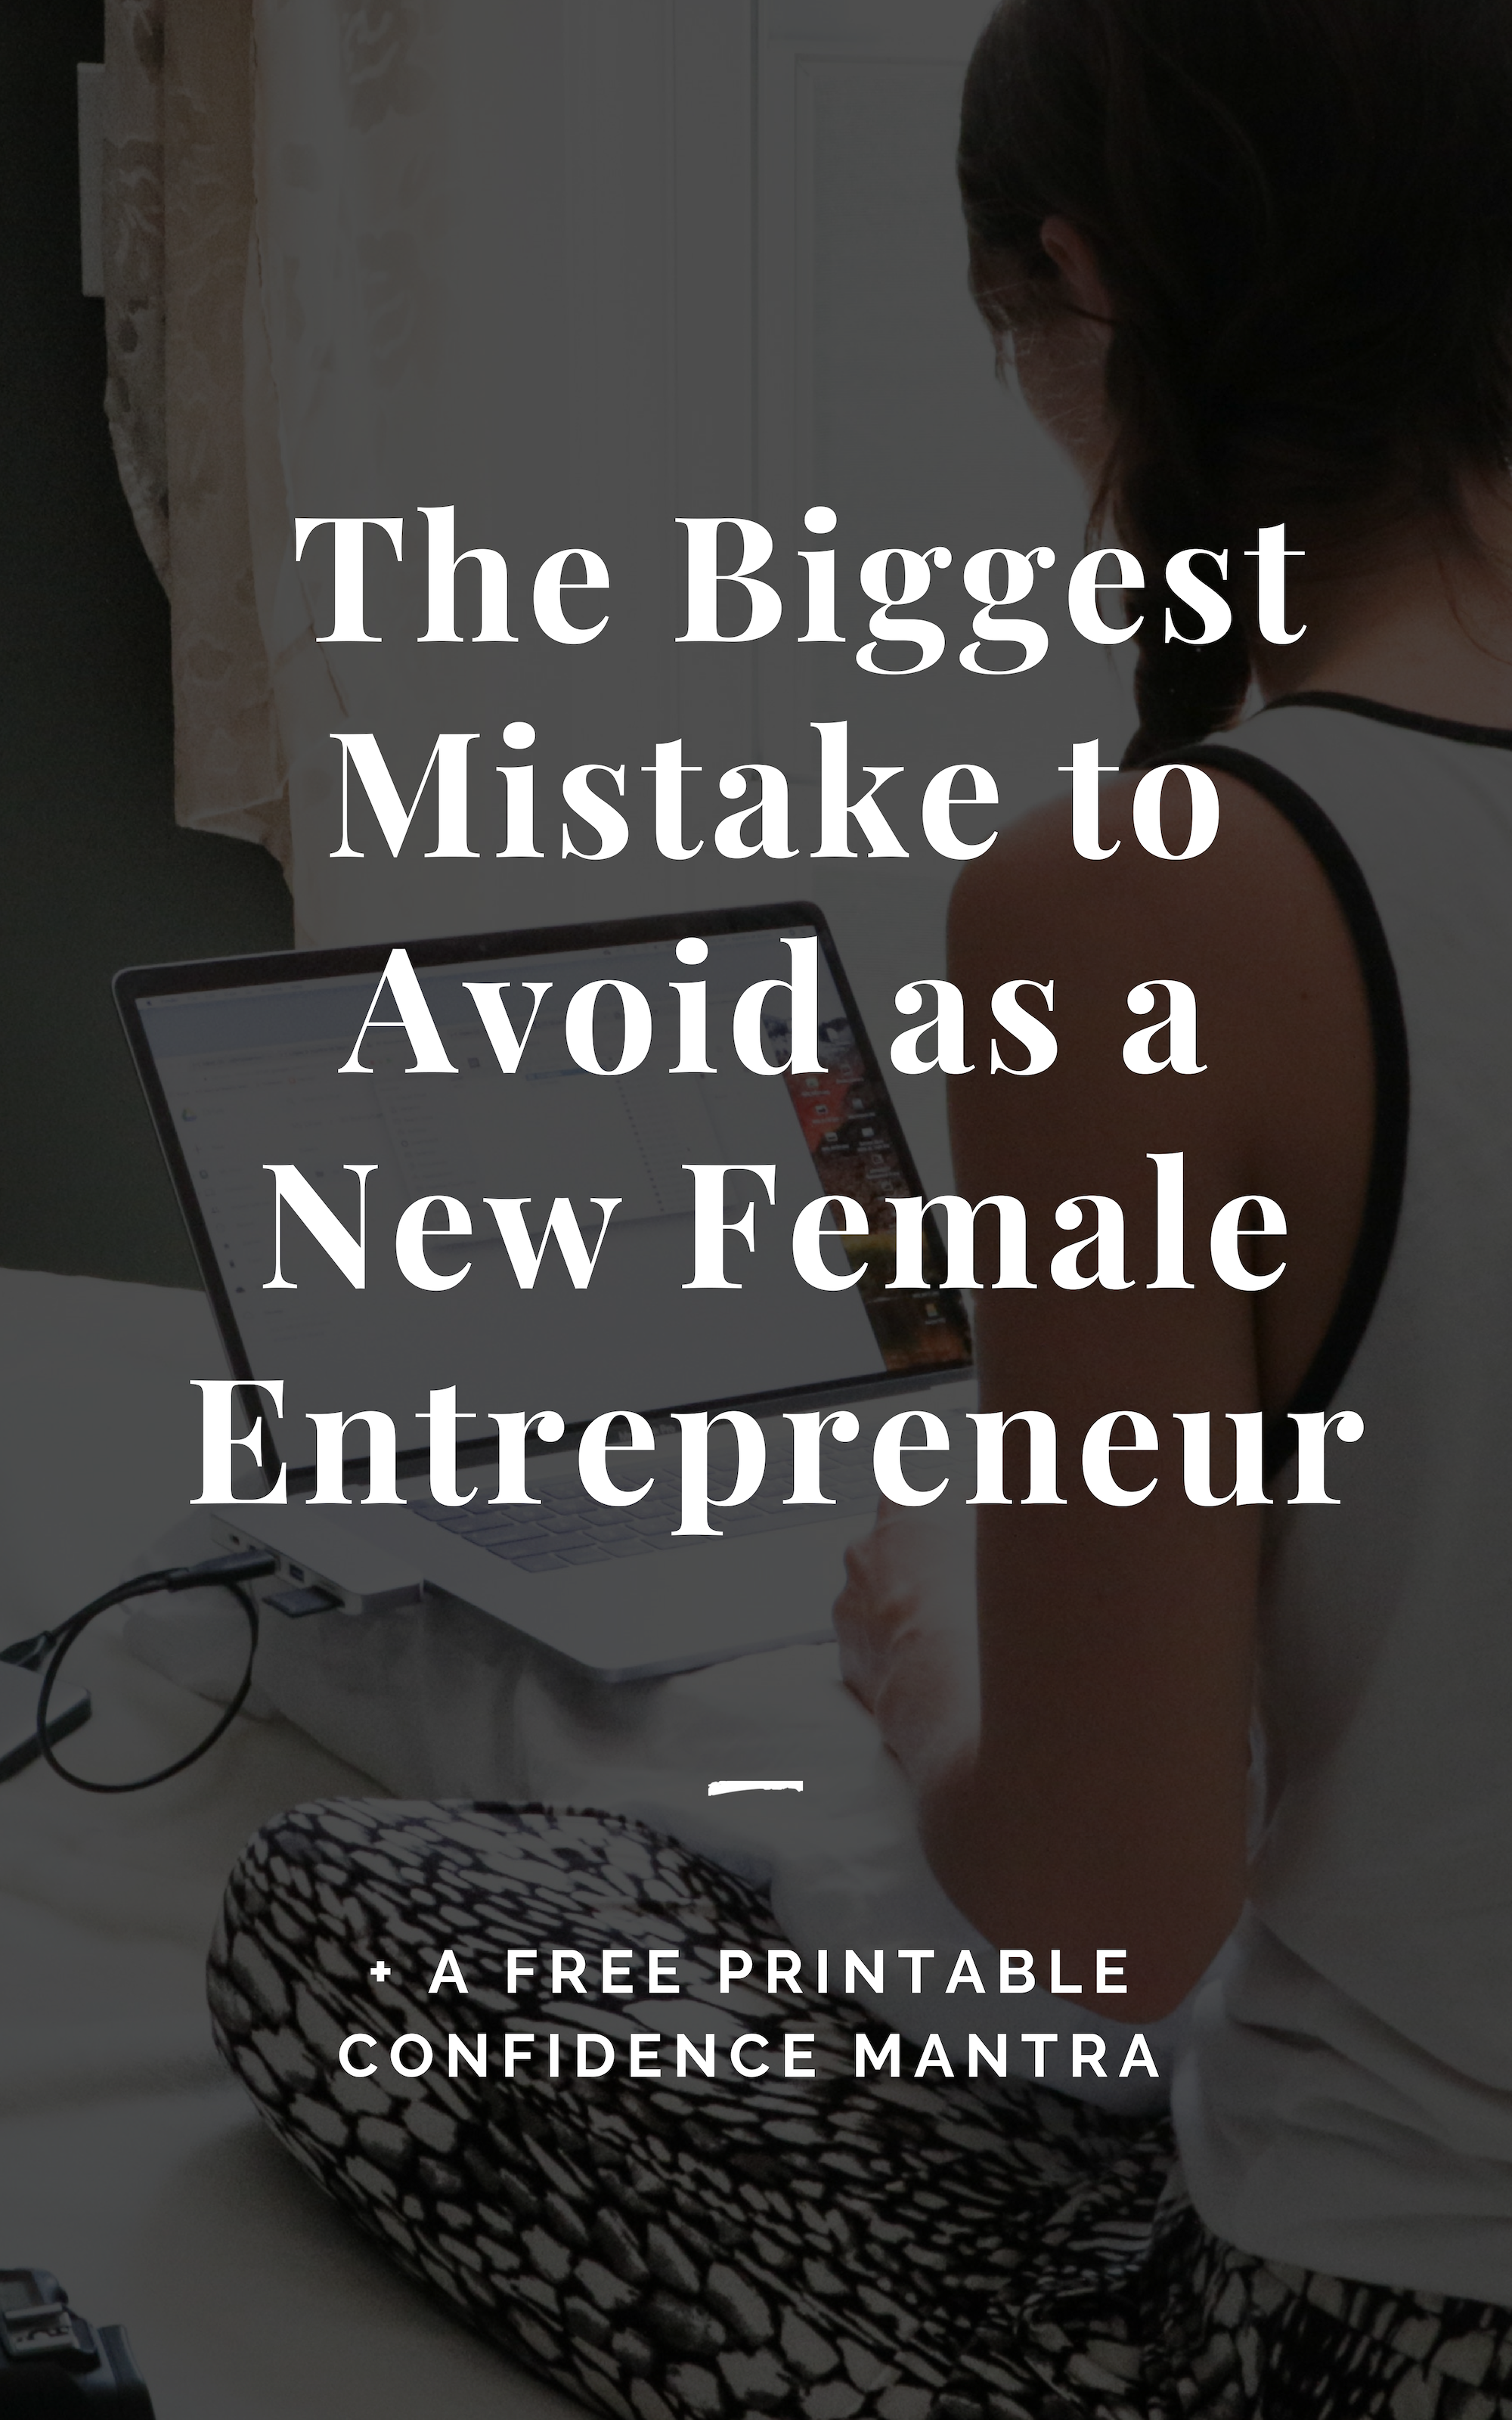 The Biggest Mistake to Avoid as a New Female Entrepreneur